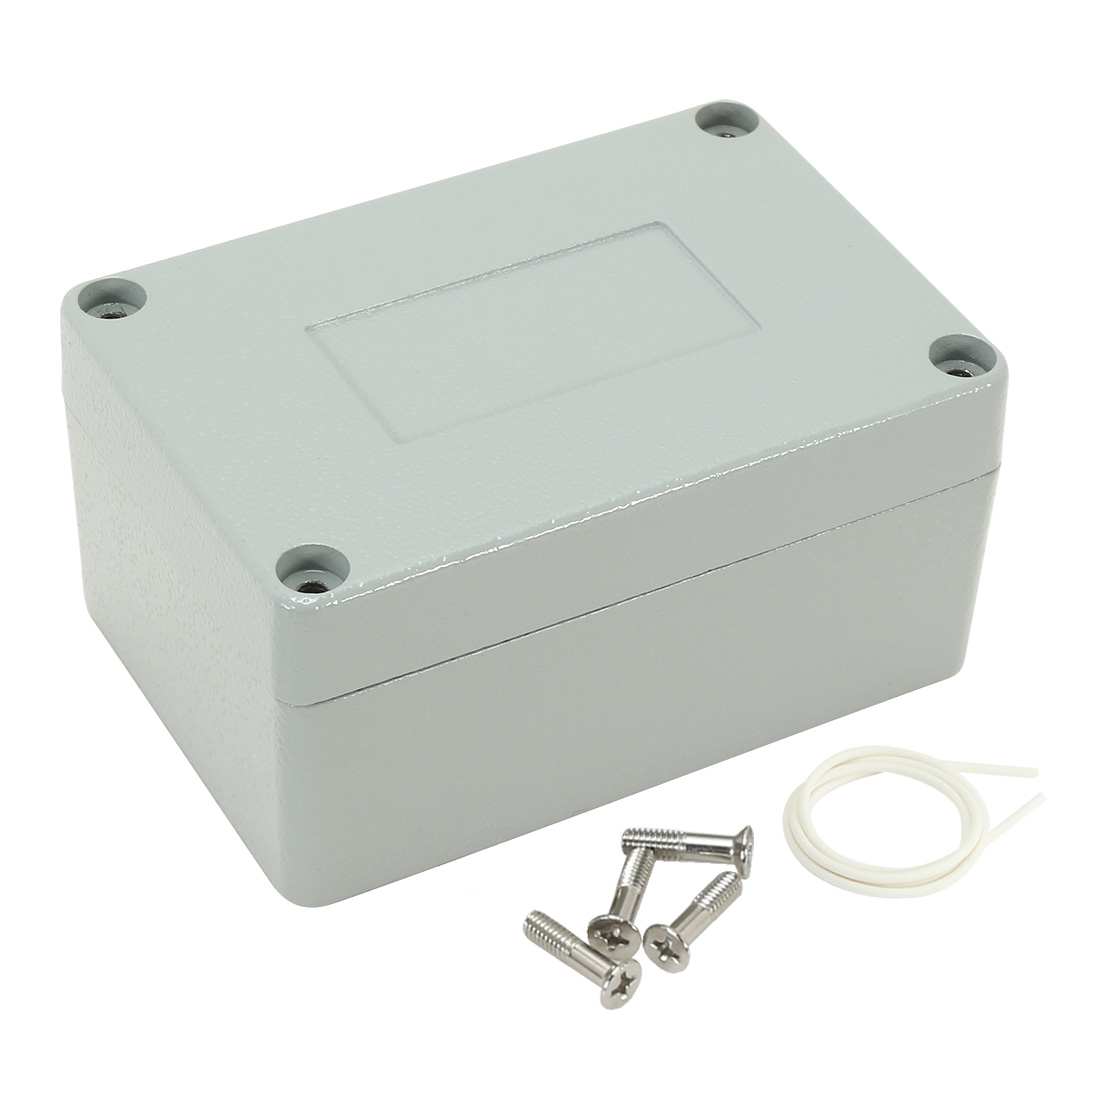 "3.9""x2.7""x2""(100mmx68mmx50mm) Aluminum Clamshell Junction Box Universal Electric Project Enclosure"